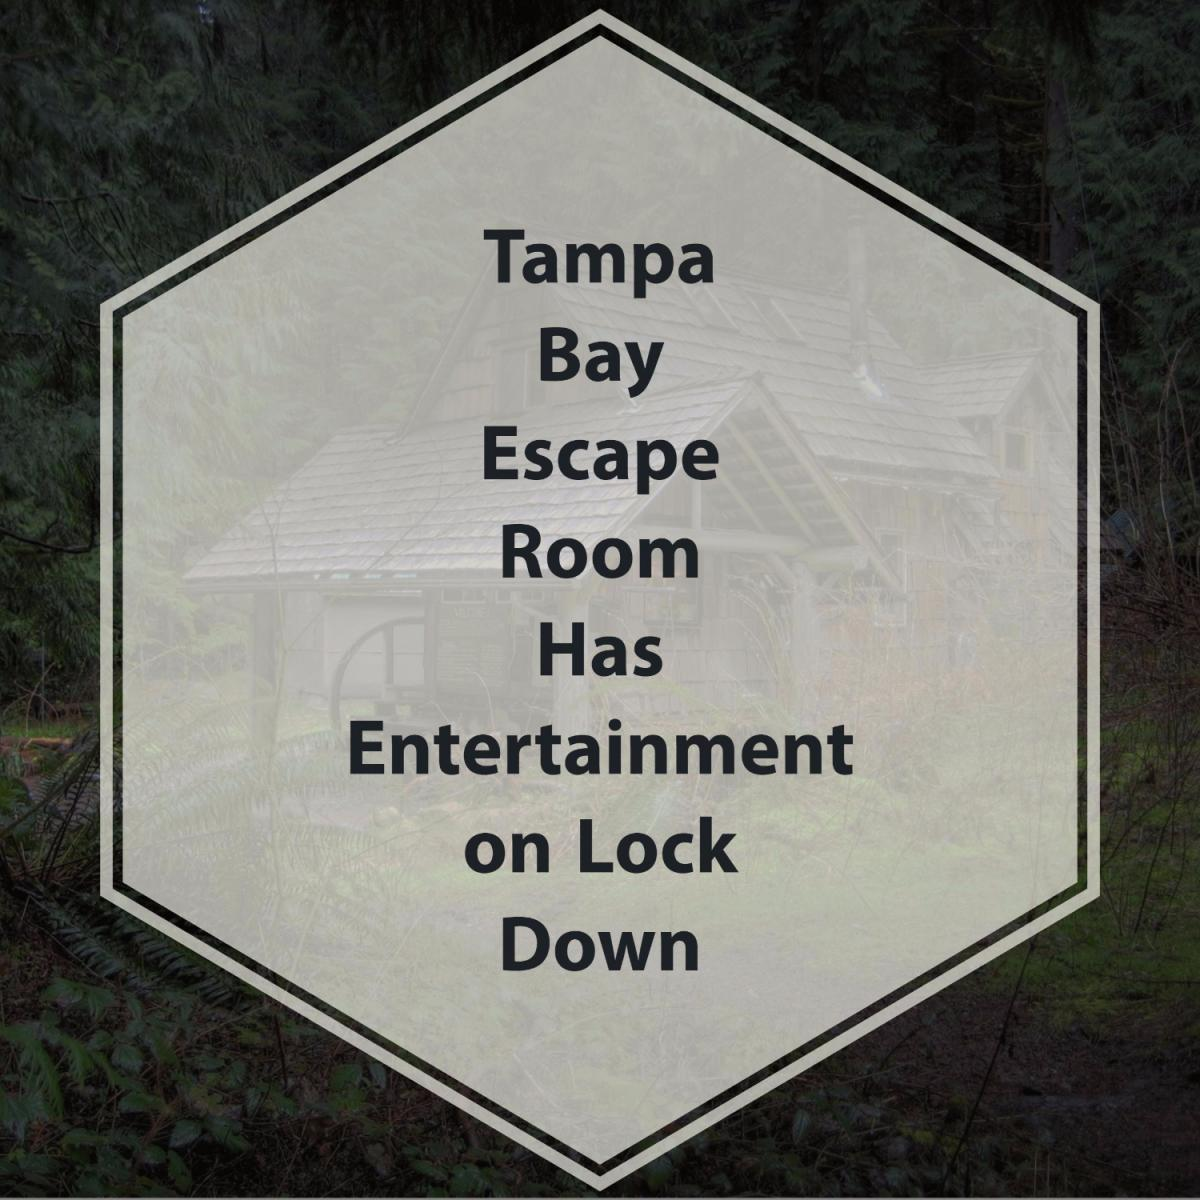 Tampa Bay Escape Room Has Entertainment on Lock Down